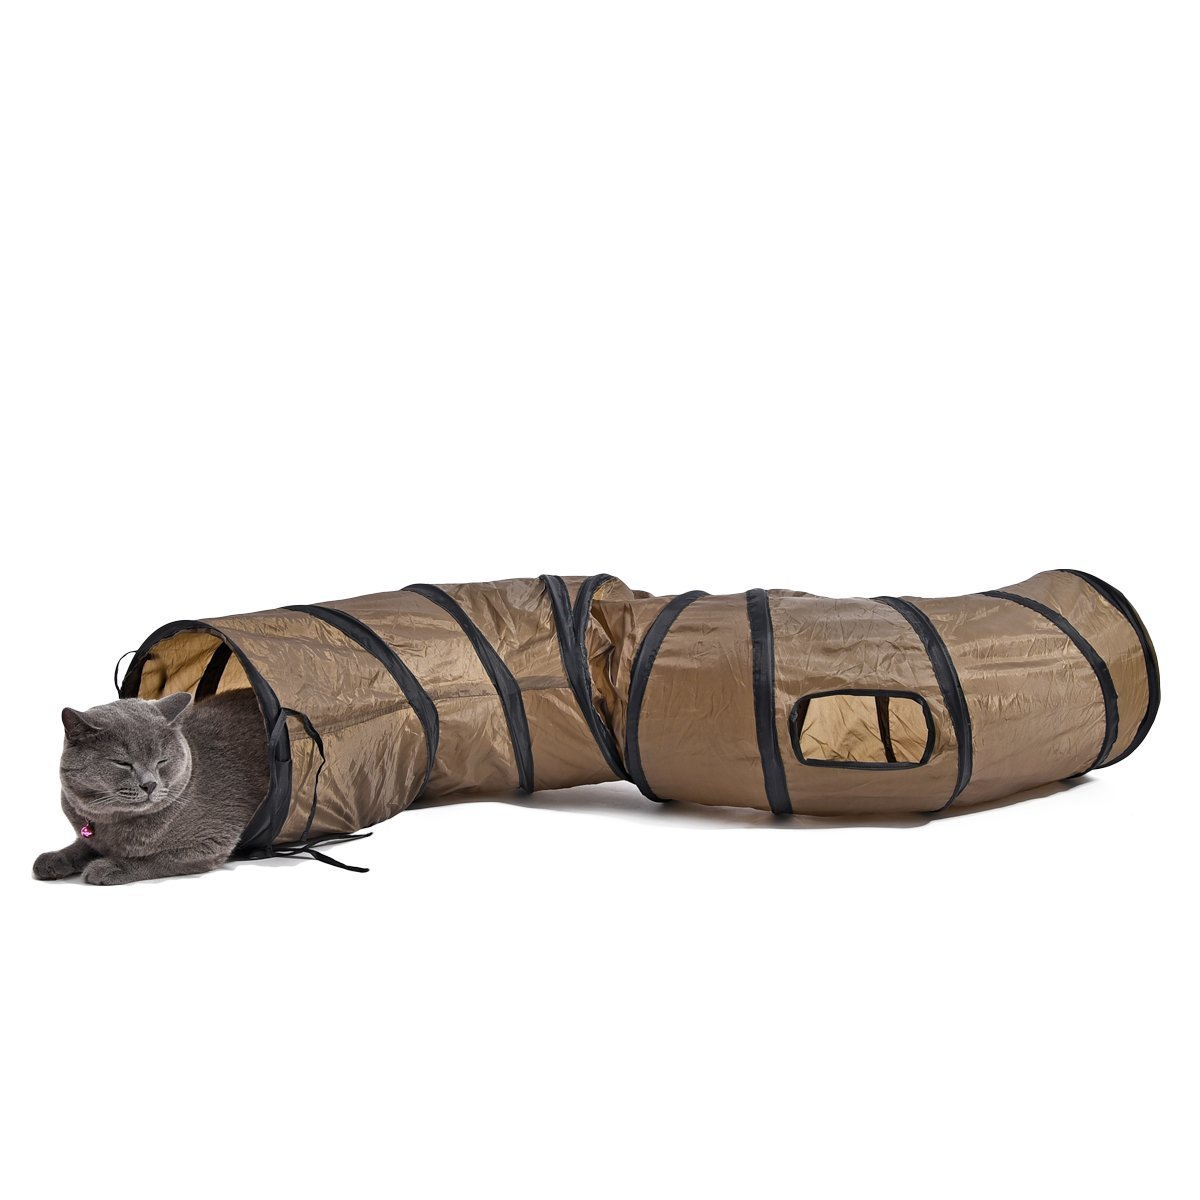 Vedem Pet Collapsible Sigmate Play Tunnel for Rabbits, Cats, and Dogs